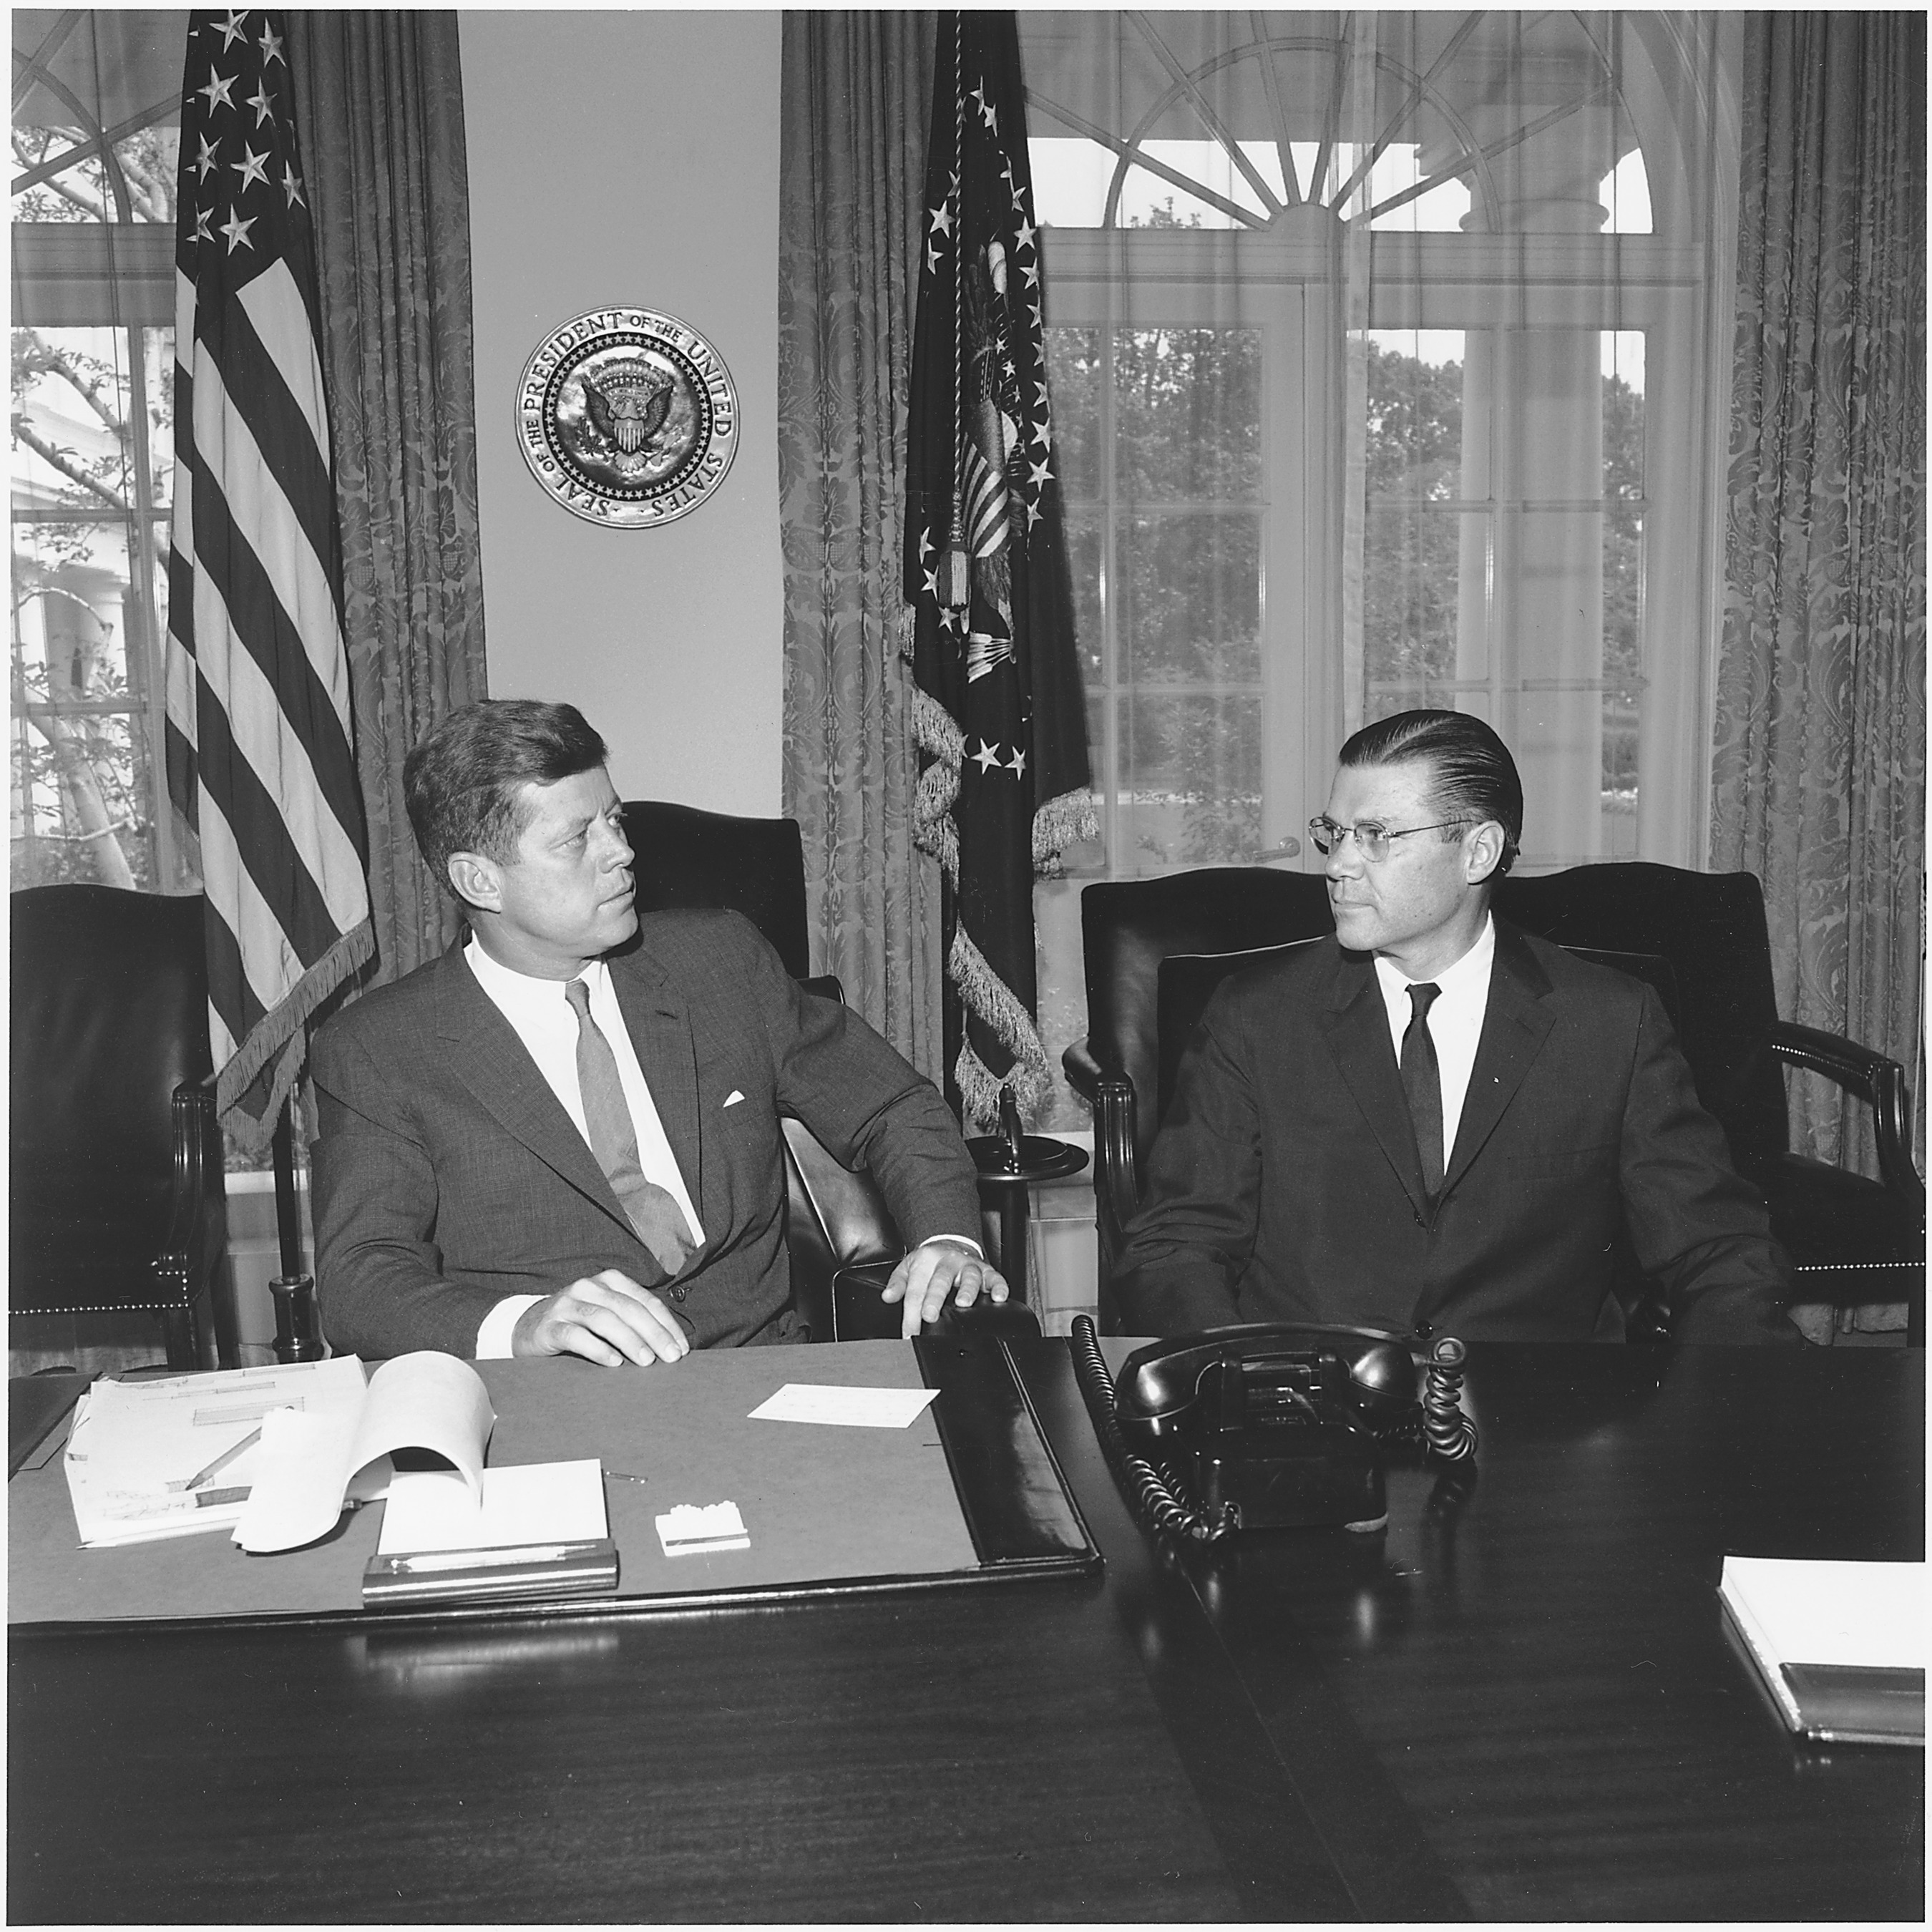 file:president meets with secretary of defense. president kennedy